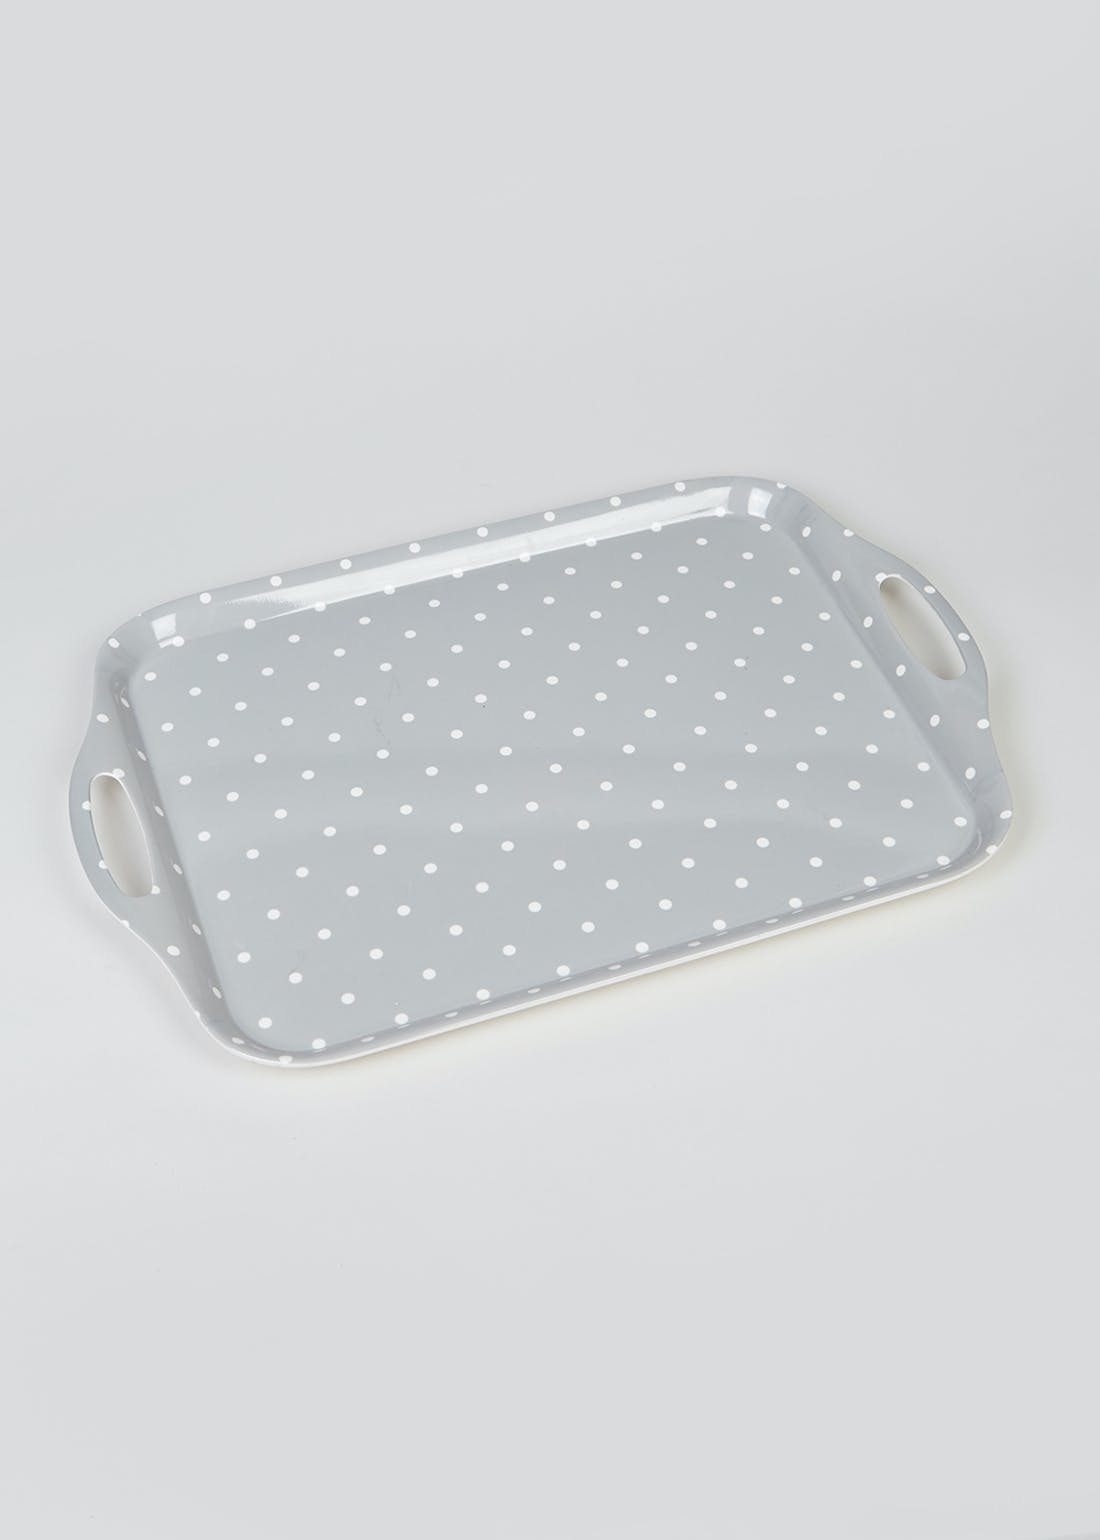 Polka Dot Food Tray (48cm x 33cm)